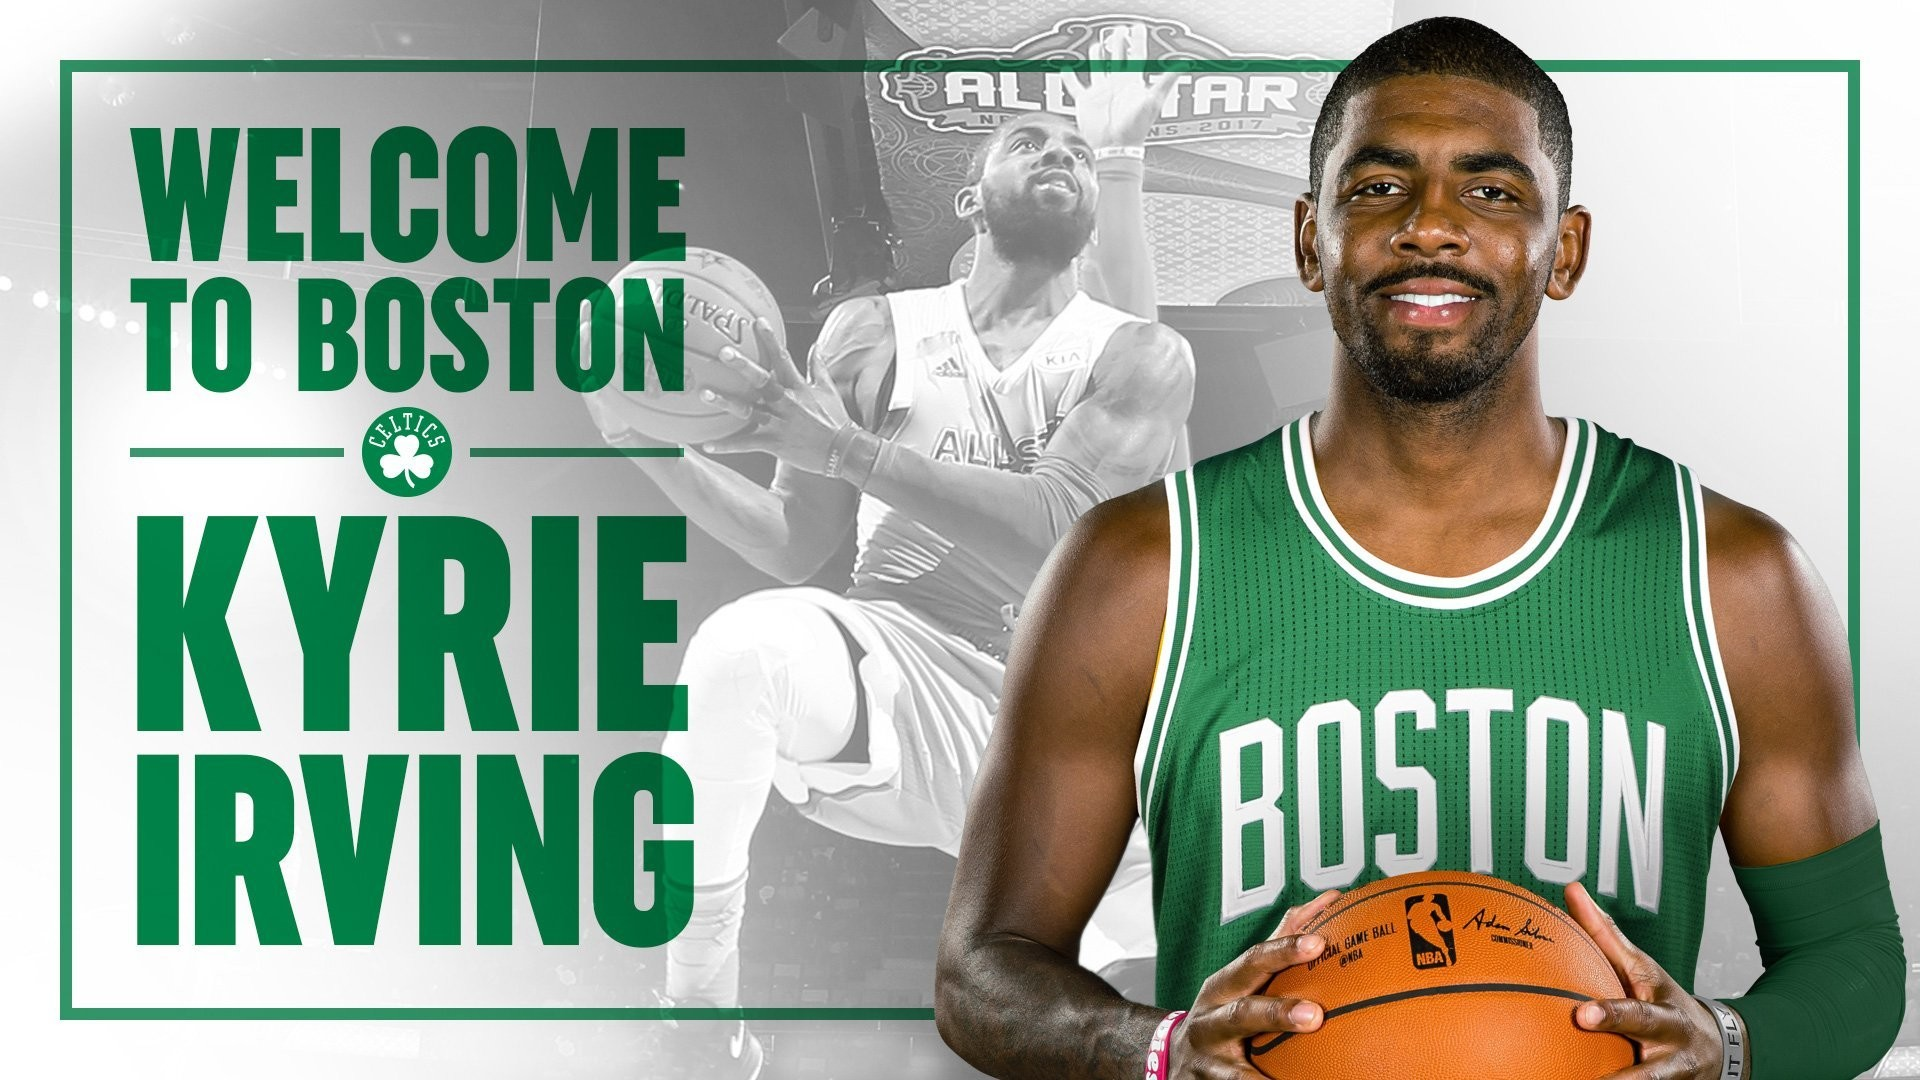 1920x1080 Kyrie Irving is Traded to the Boston Celtics, Defying the Hive-Mind |  Inverse